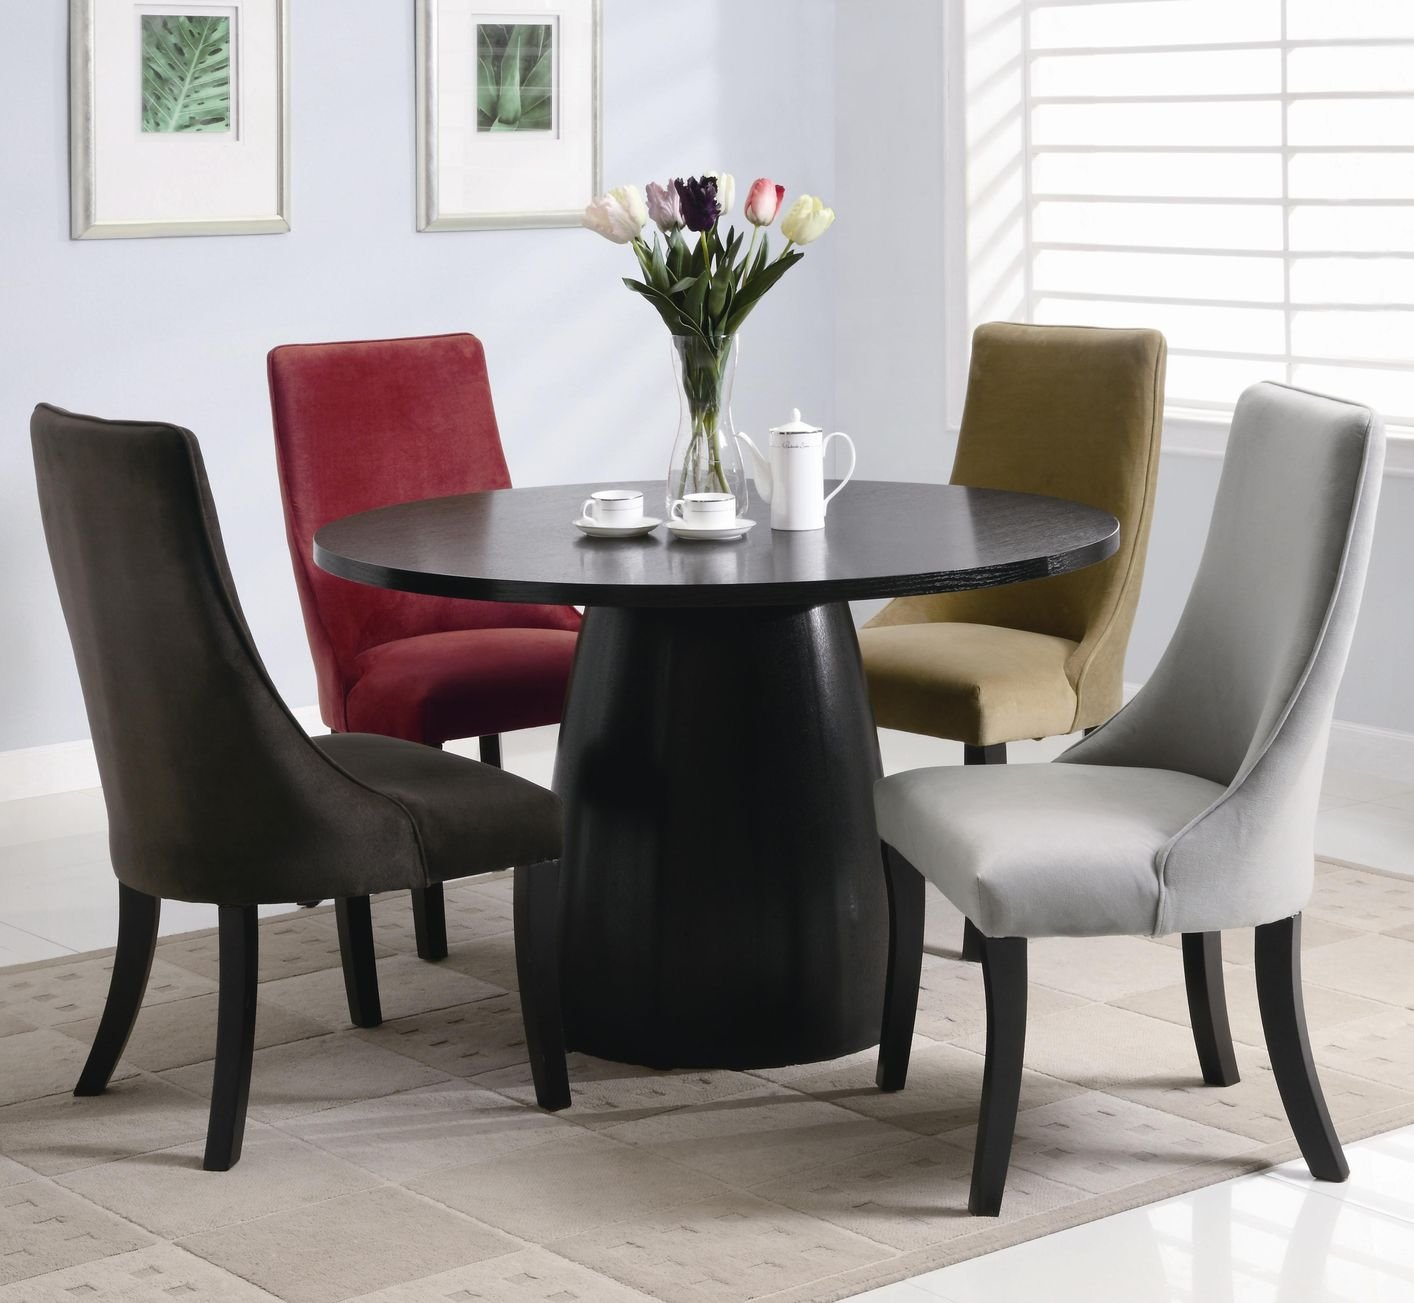 amhurst black satin wood dining table - steal-a-sofa furniture